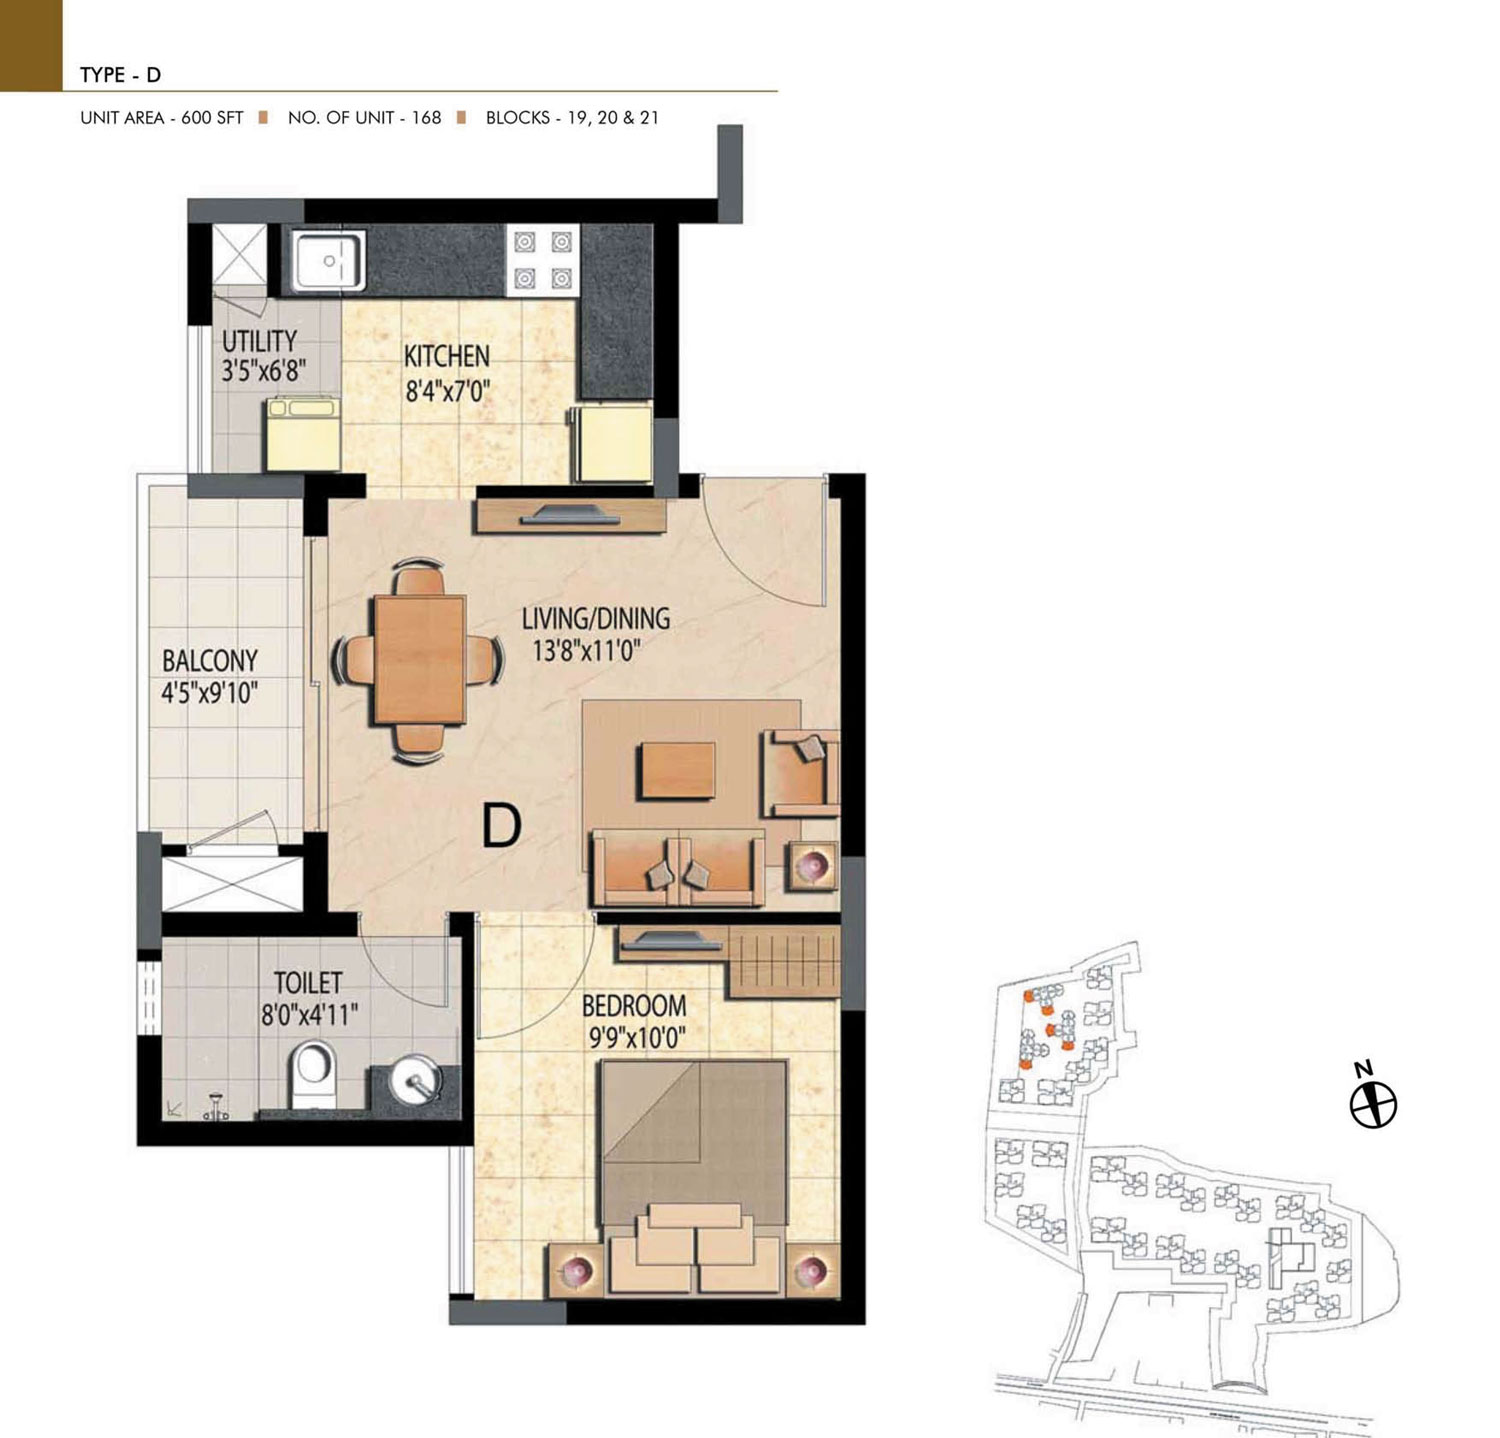 Type D - 1 Bed - 600 Sq Ft